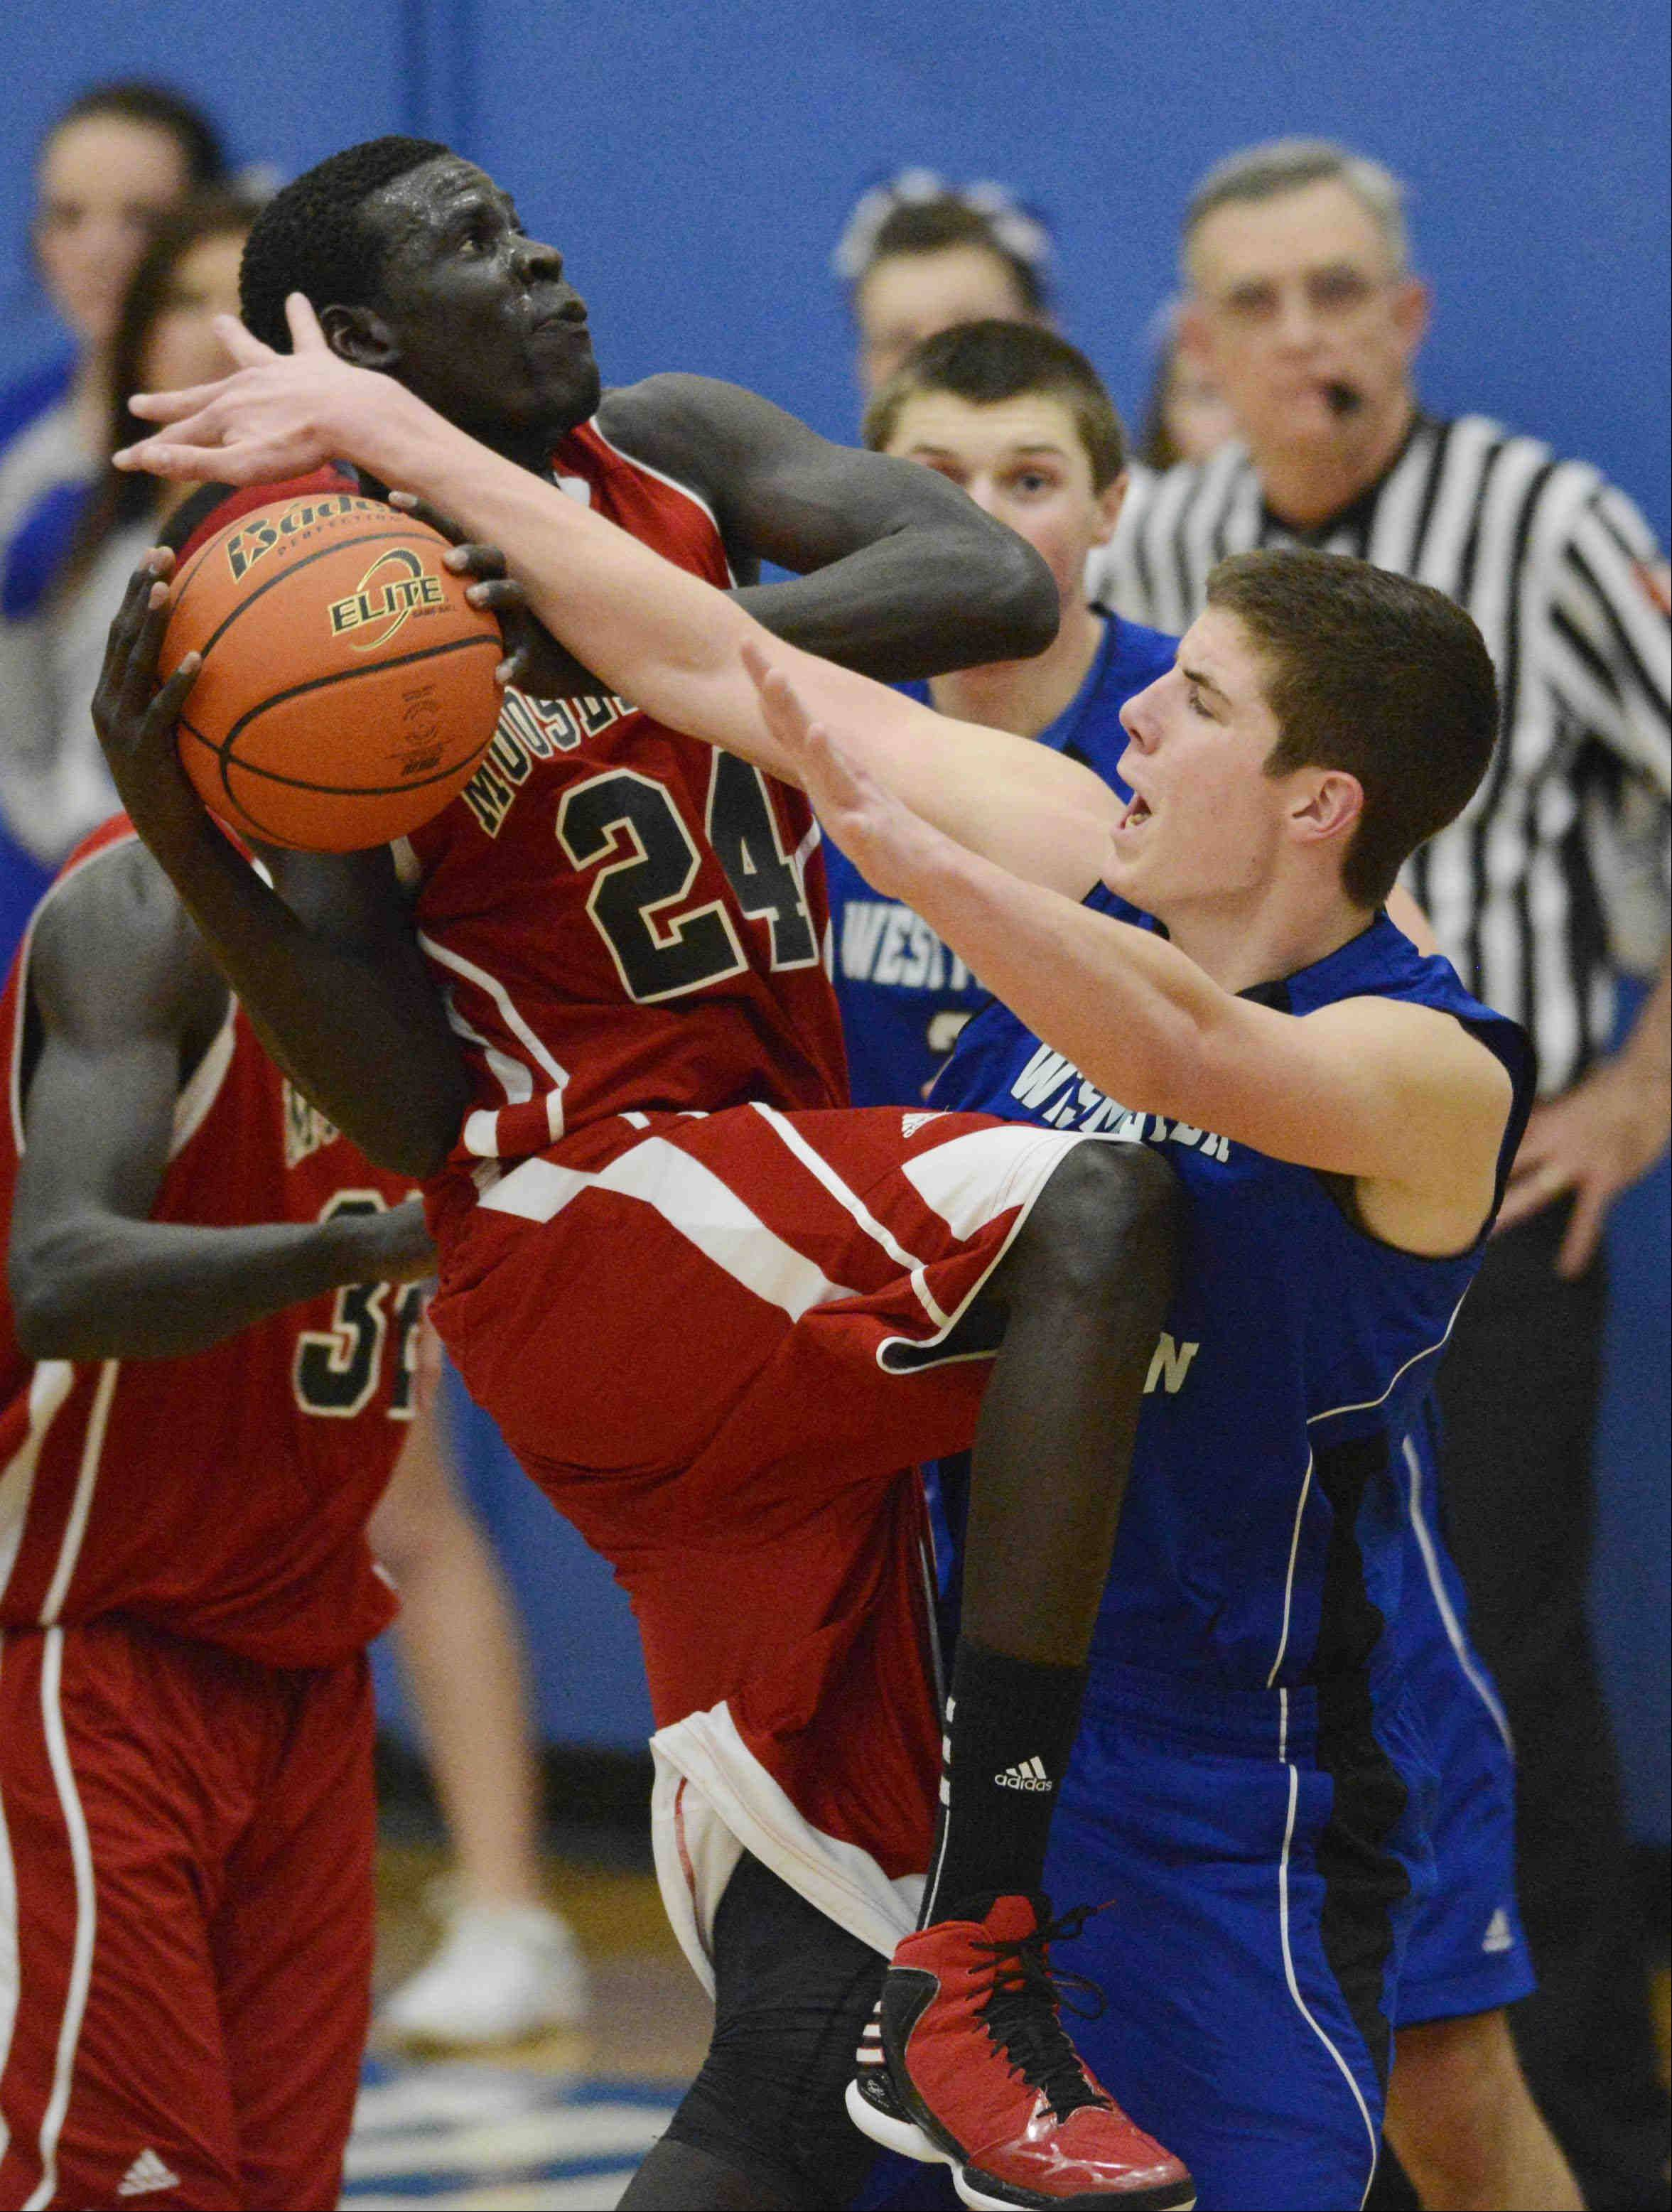 Westminster Christian's Sam Carini doesn't move as Mooseheart's Mangisto Deng drives into him Wednesday in Elgin. Traveling was called against Deng.